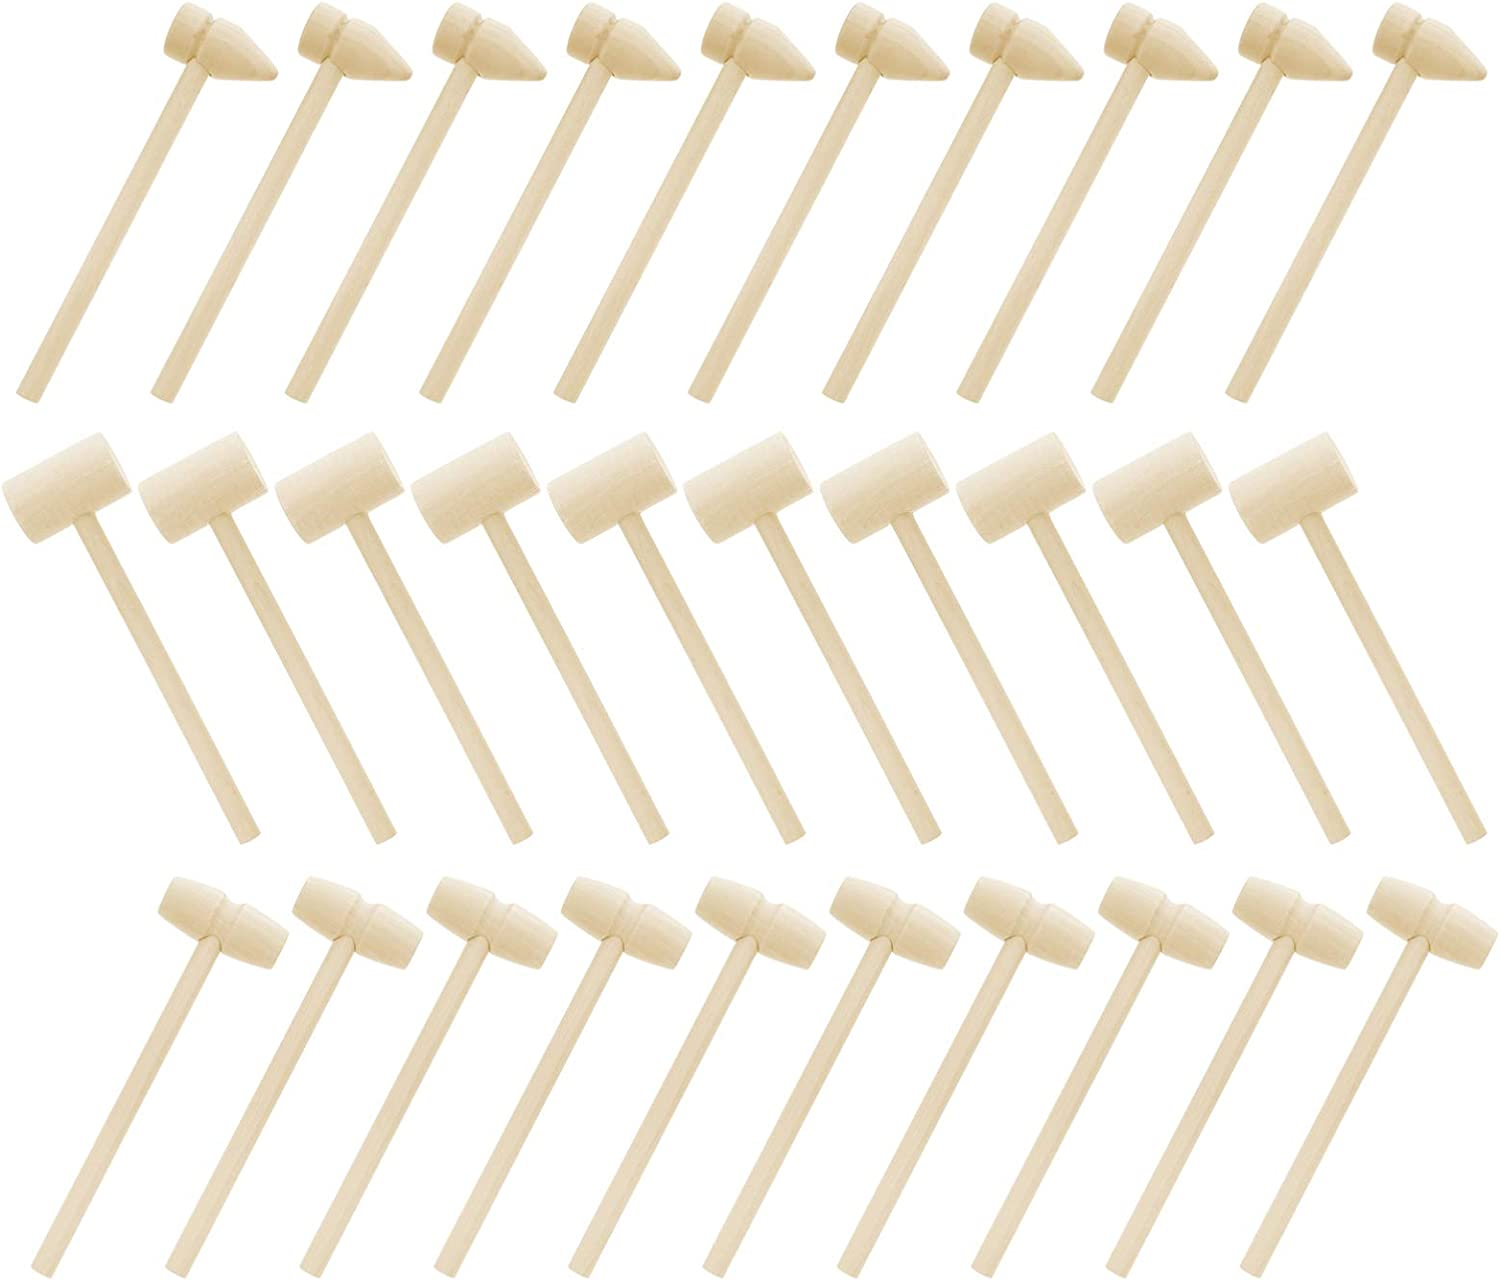 EXCEART 30pcs Mini Max New York Mall 83% OFF Wooden Hammer G Kids Small Mallets Toy